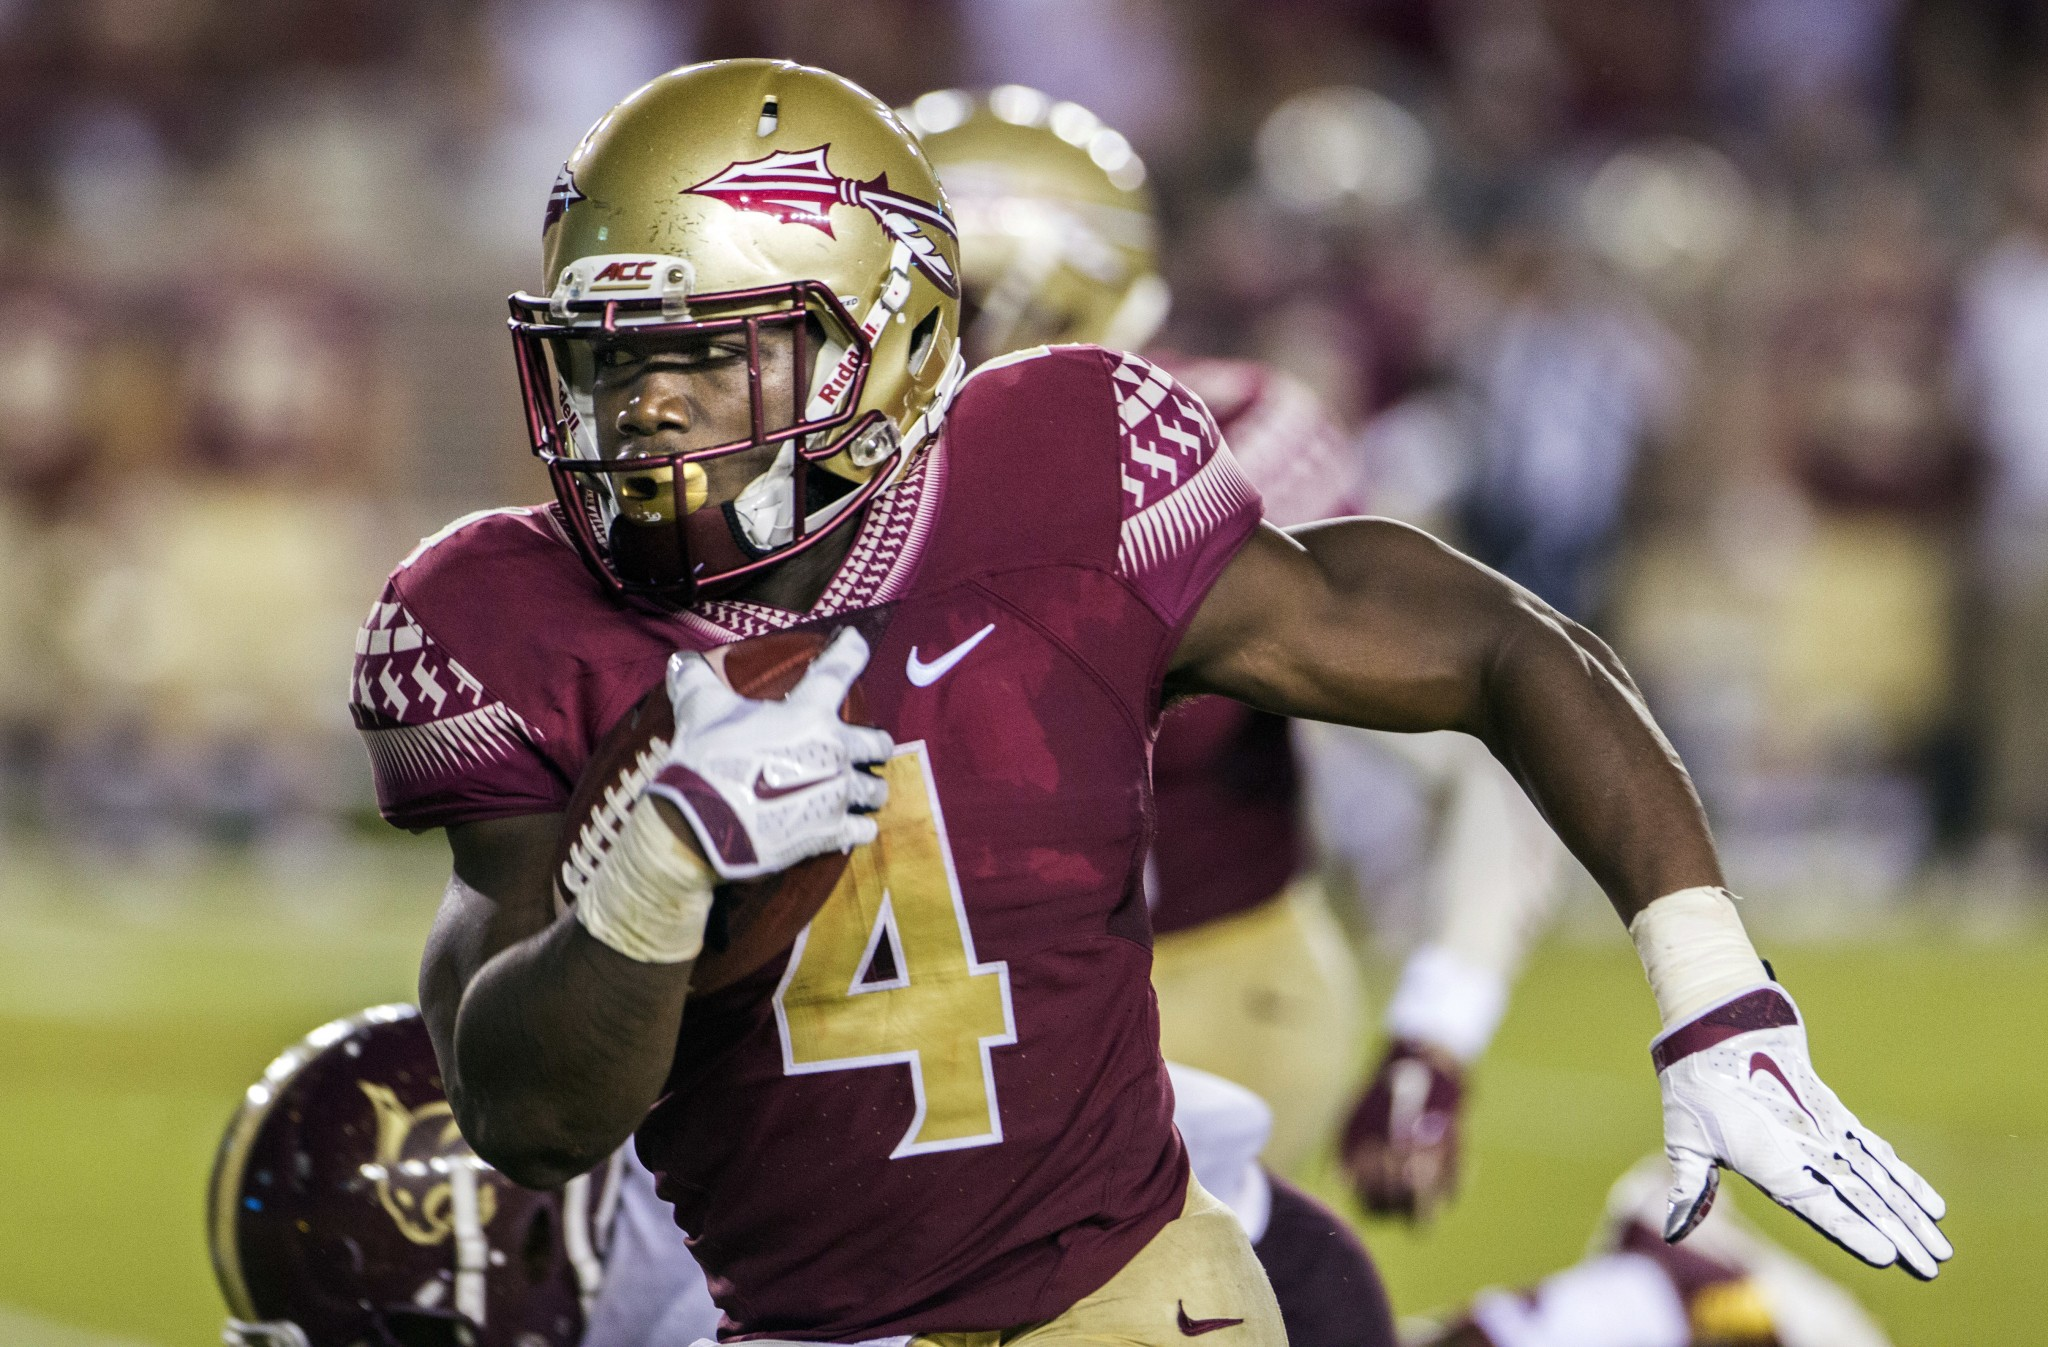 Florida State running back Dalvin Cook. (AP Photo/Mark Wallheiser, File)